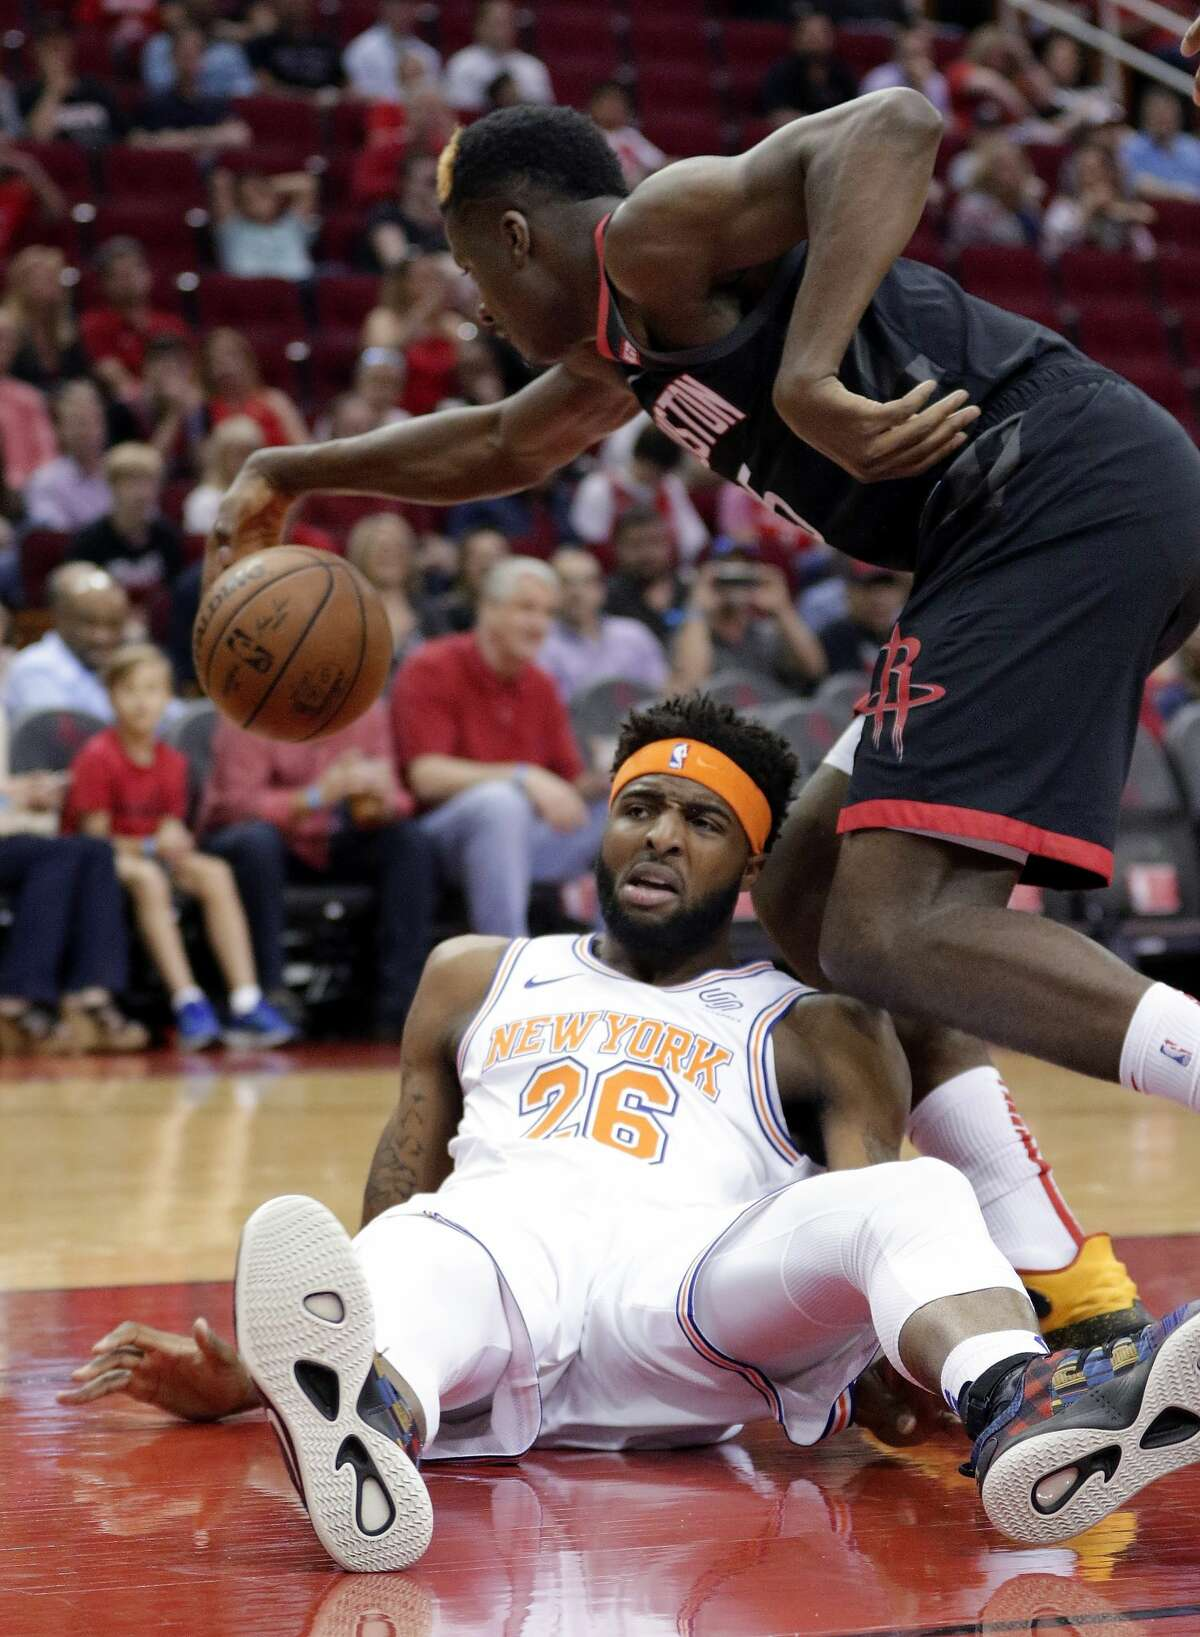 Houston Rockets center Clint Capela, top, chases the ball after New York Knicks center Mitchell Robinson (26) lost it on a fall during the first half of an NBA basketball game Friday, April 5, 2019, in Houston. (AP Photo/Michael Wyke)